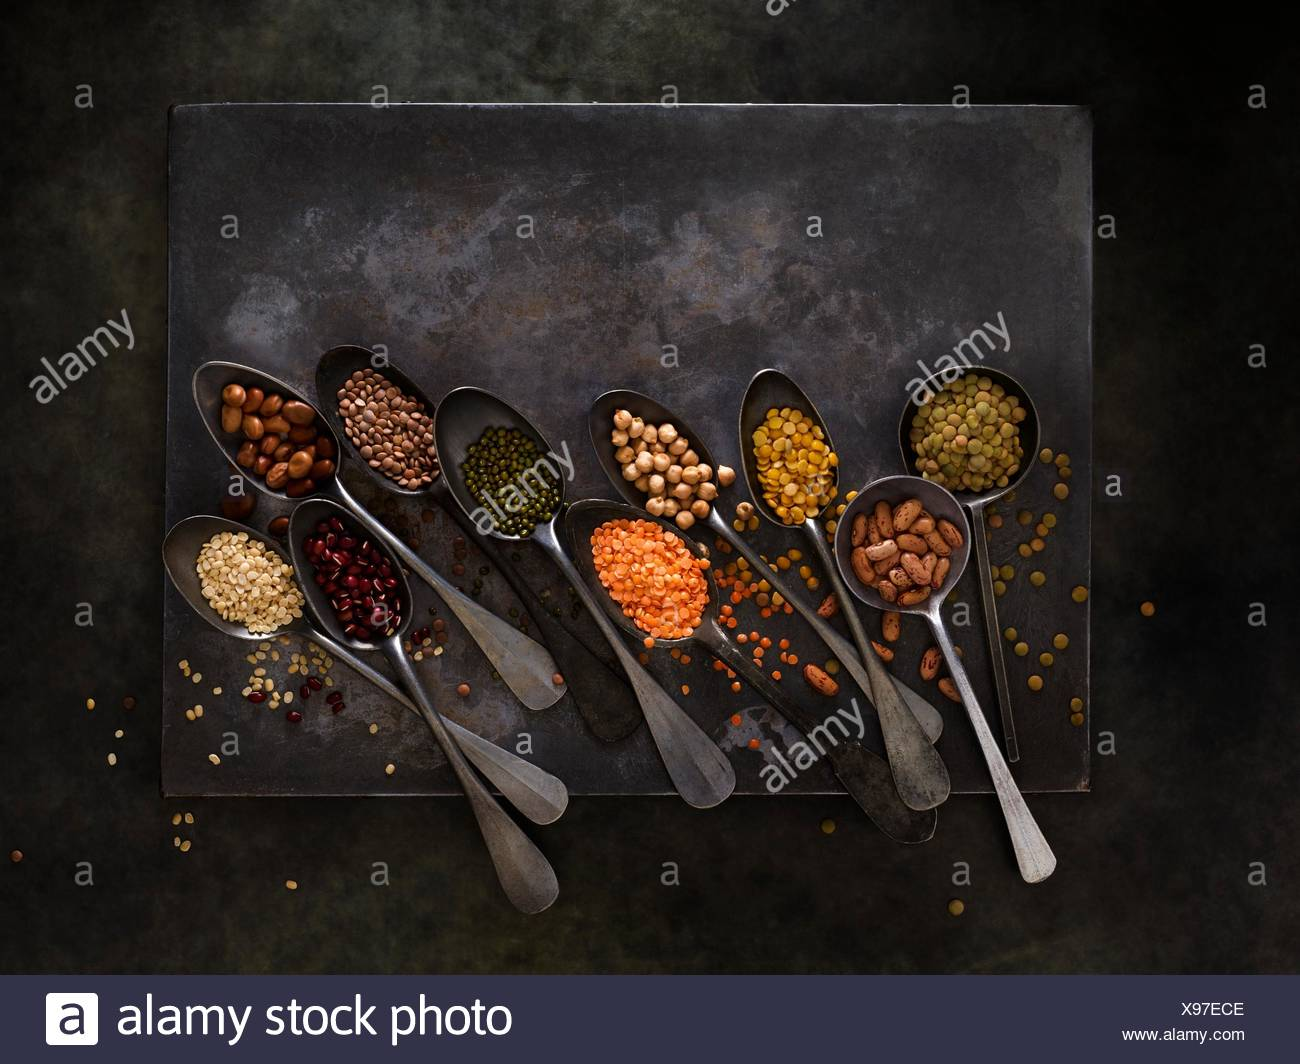 Pulses on metal spoons, overhead view. Stock Photo